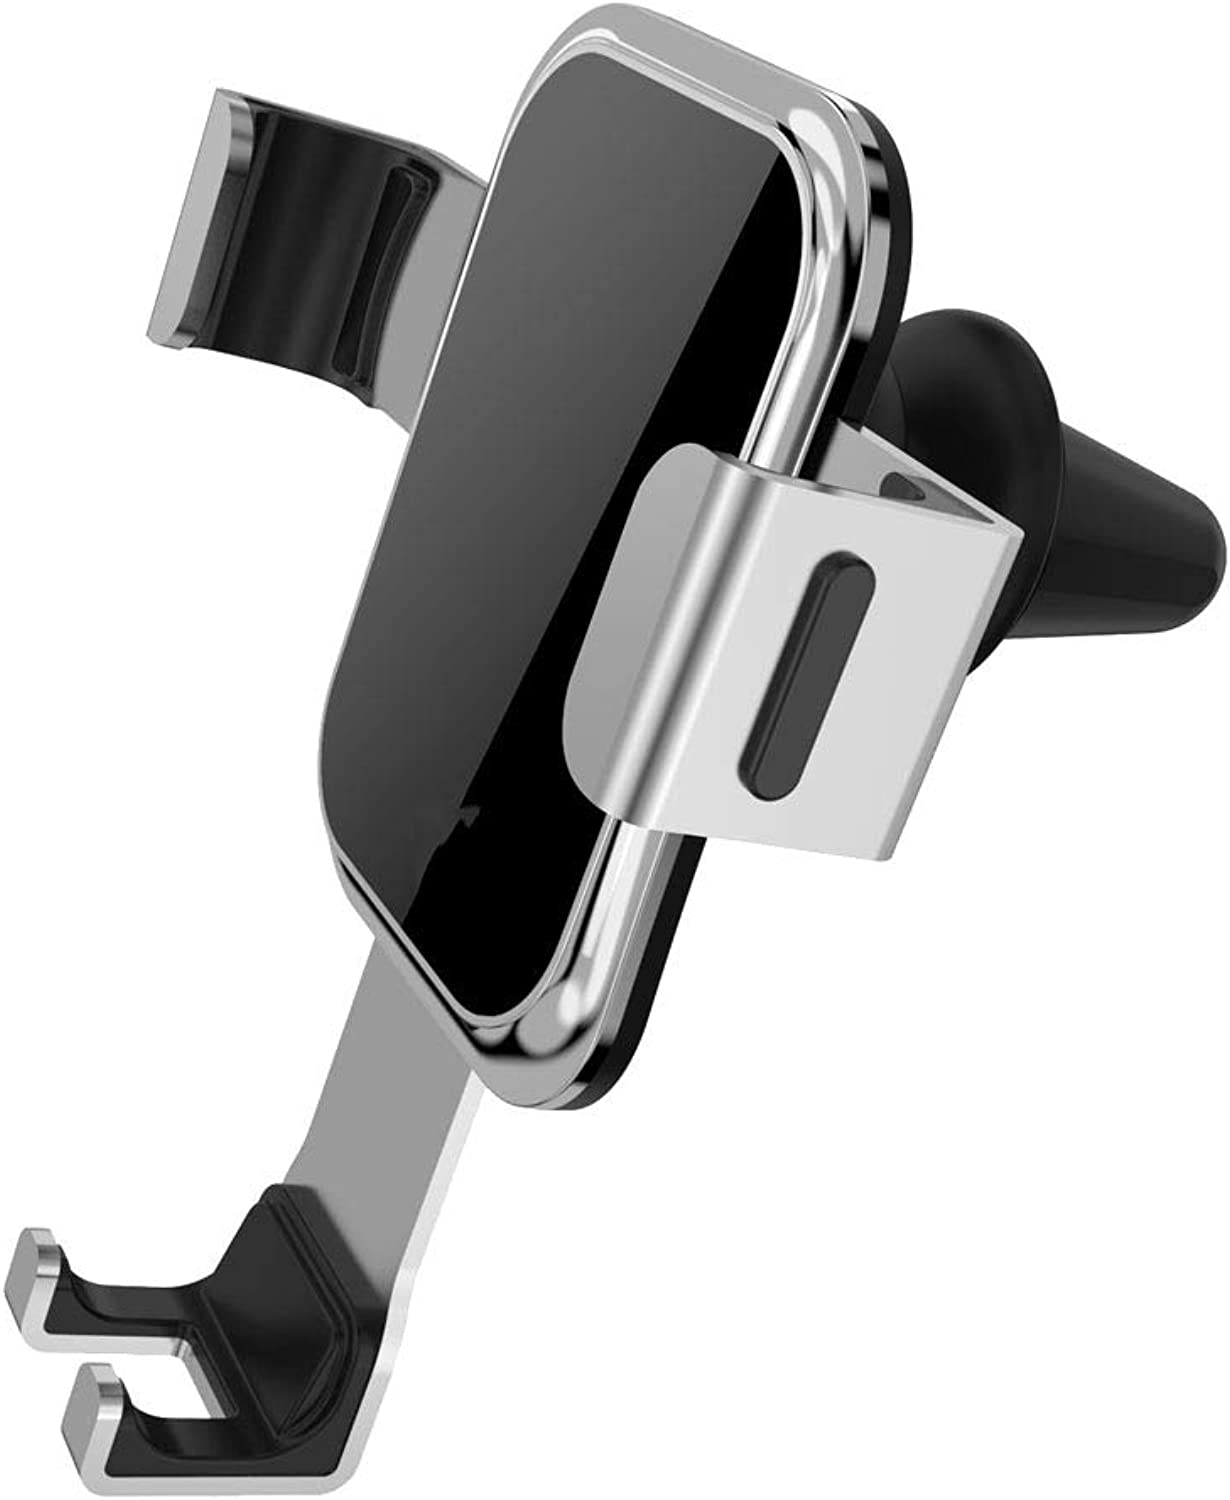 Metal Gravity Car Phone Holder 360° redating Air Outlet Mobile Navigation Bracket for iPhone Xr, Xs, X, Samsung Note 9, S9, Huawei, Sony, HTC